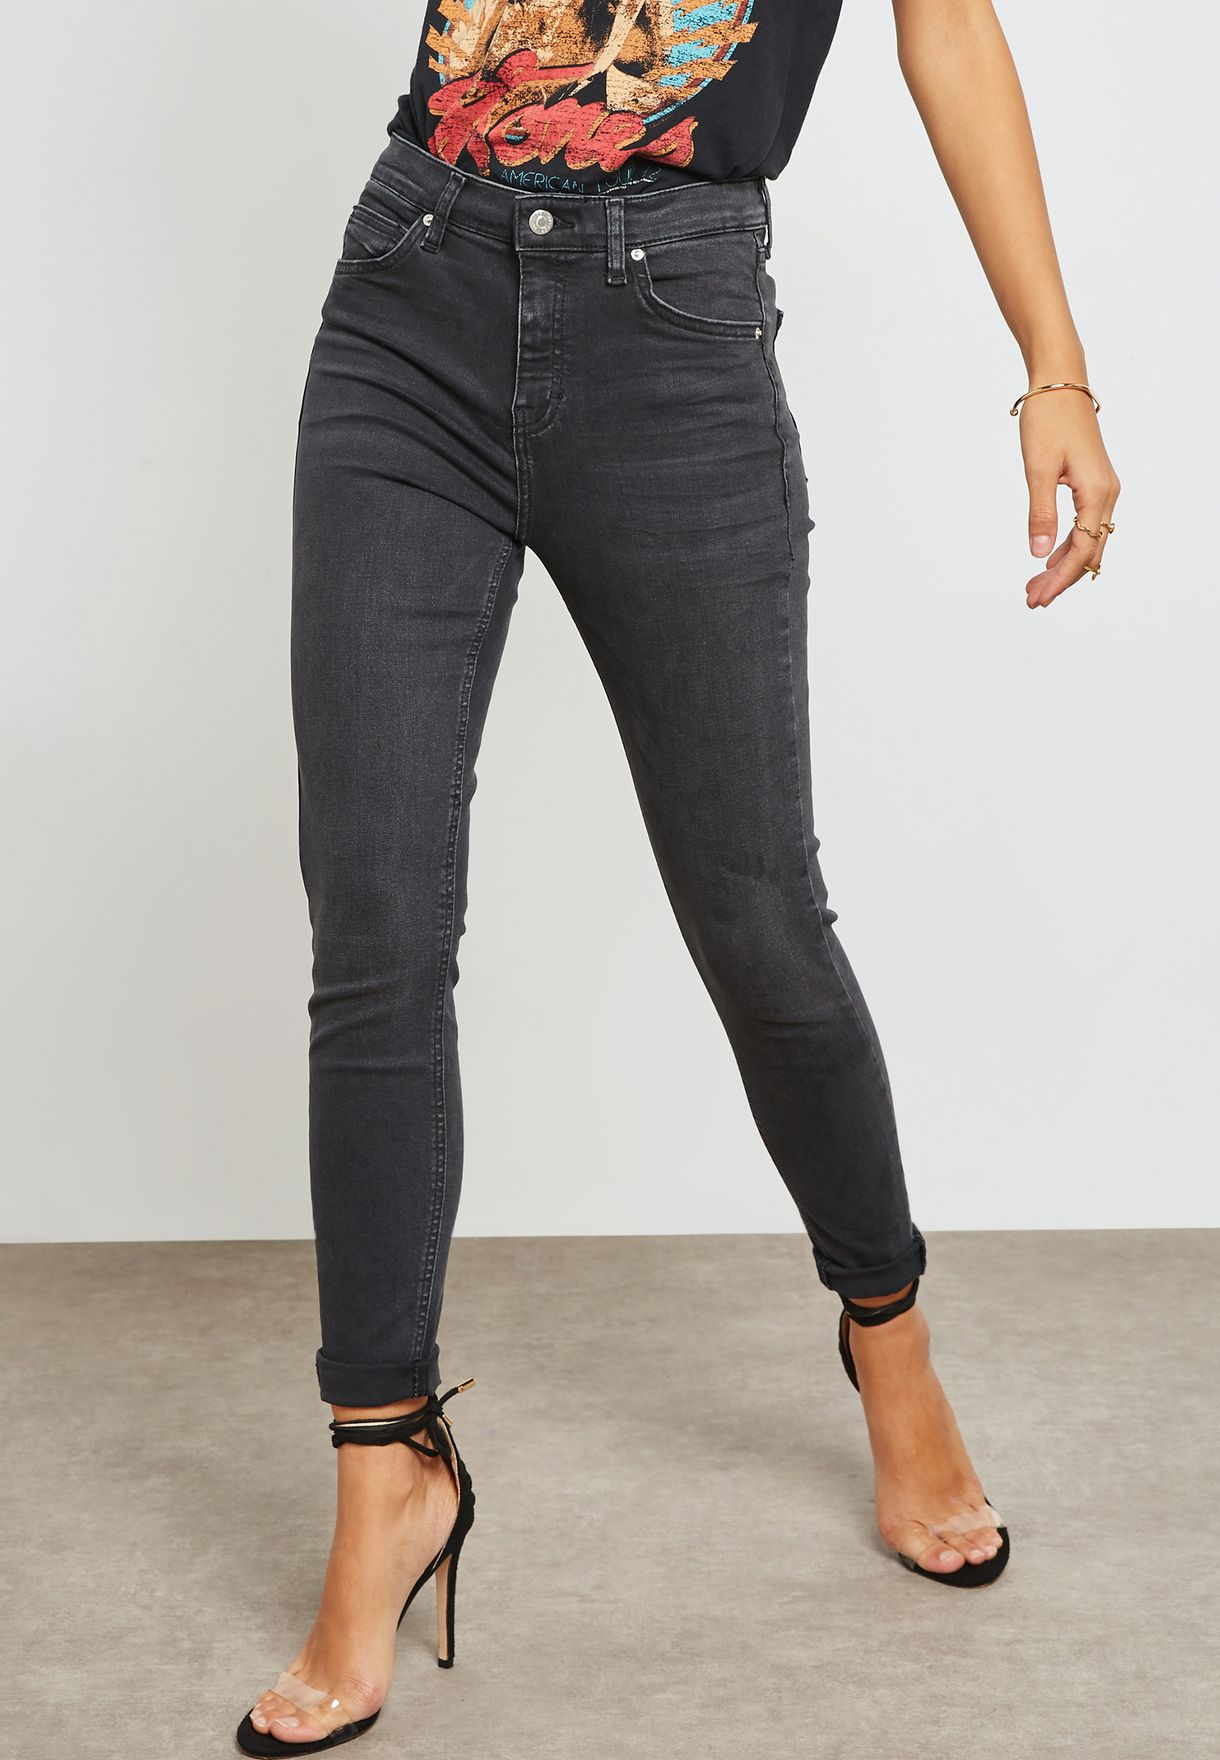 14d976b0d1 Shop Topshop black MOTO Jamie High Rise Skinny Jeans 02K04NWBK   02K05NWBK  for Women in UAE - TO856AT44IZZ